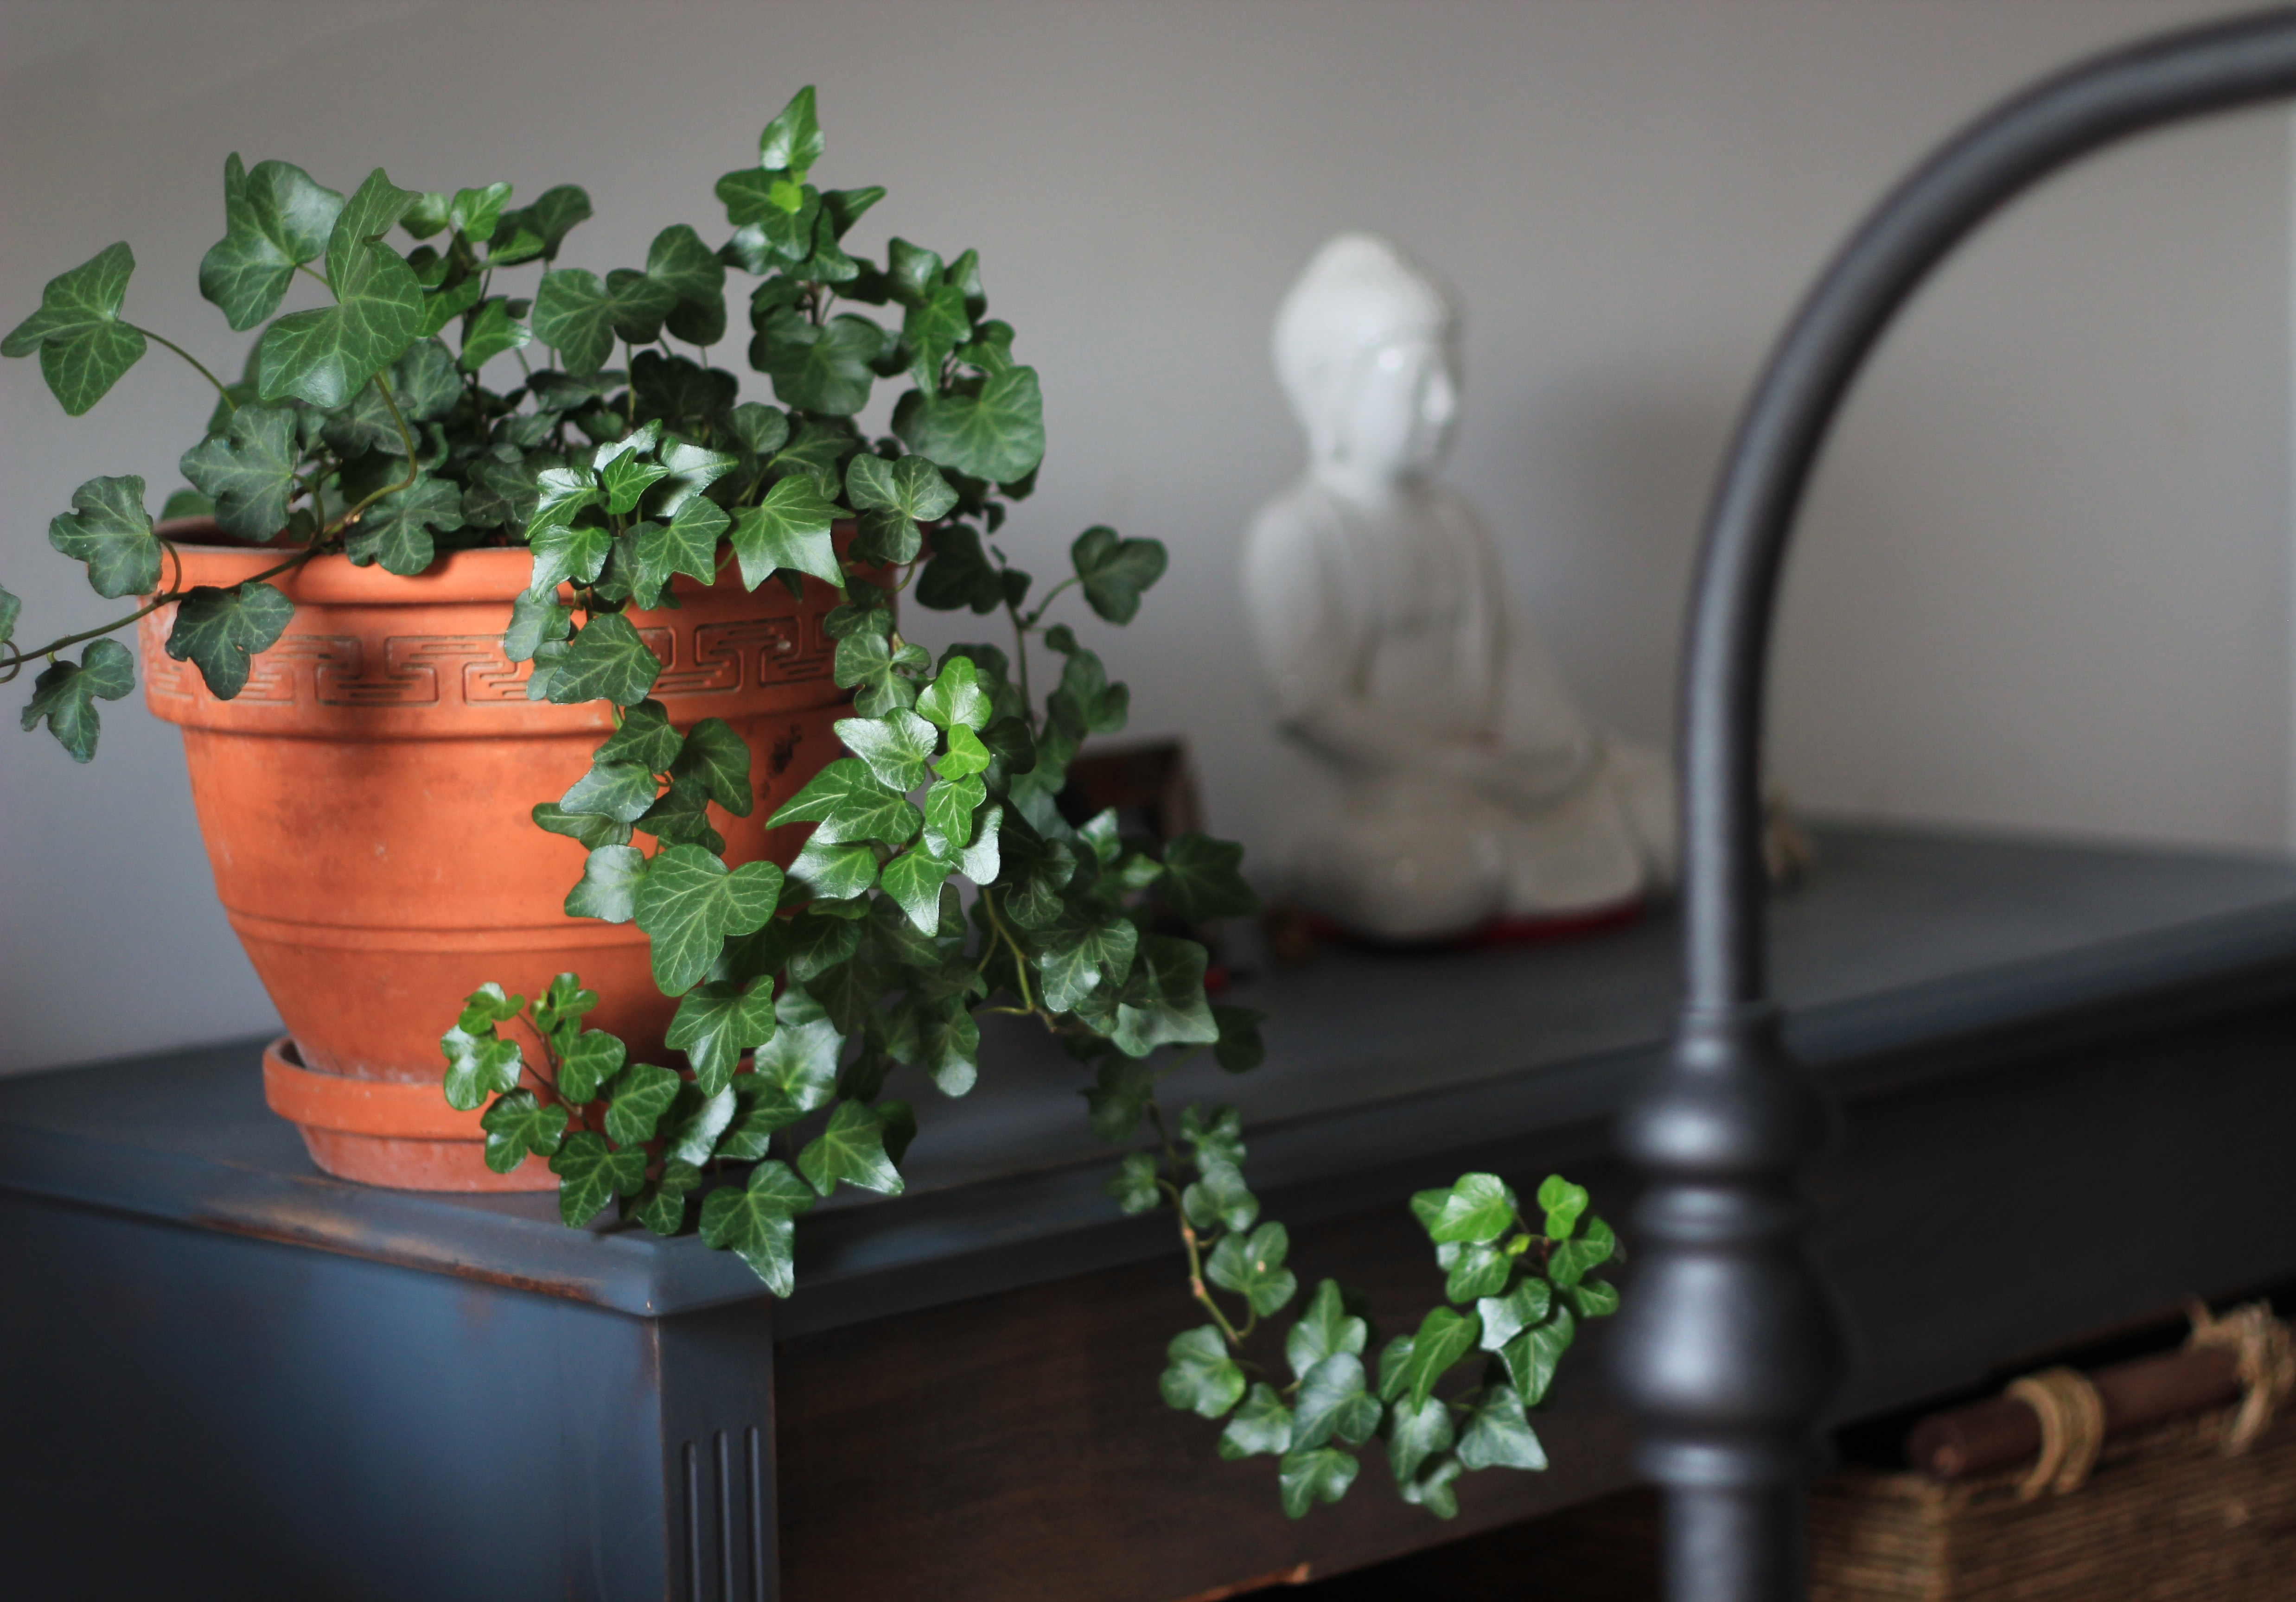 green leafed plant on brown clay pot near wall